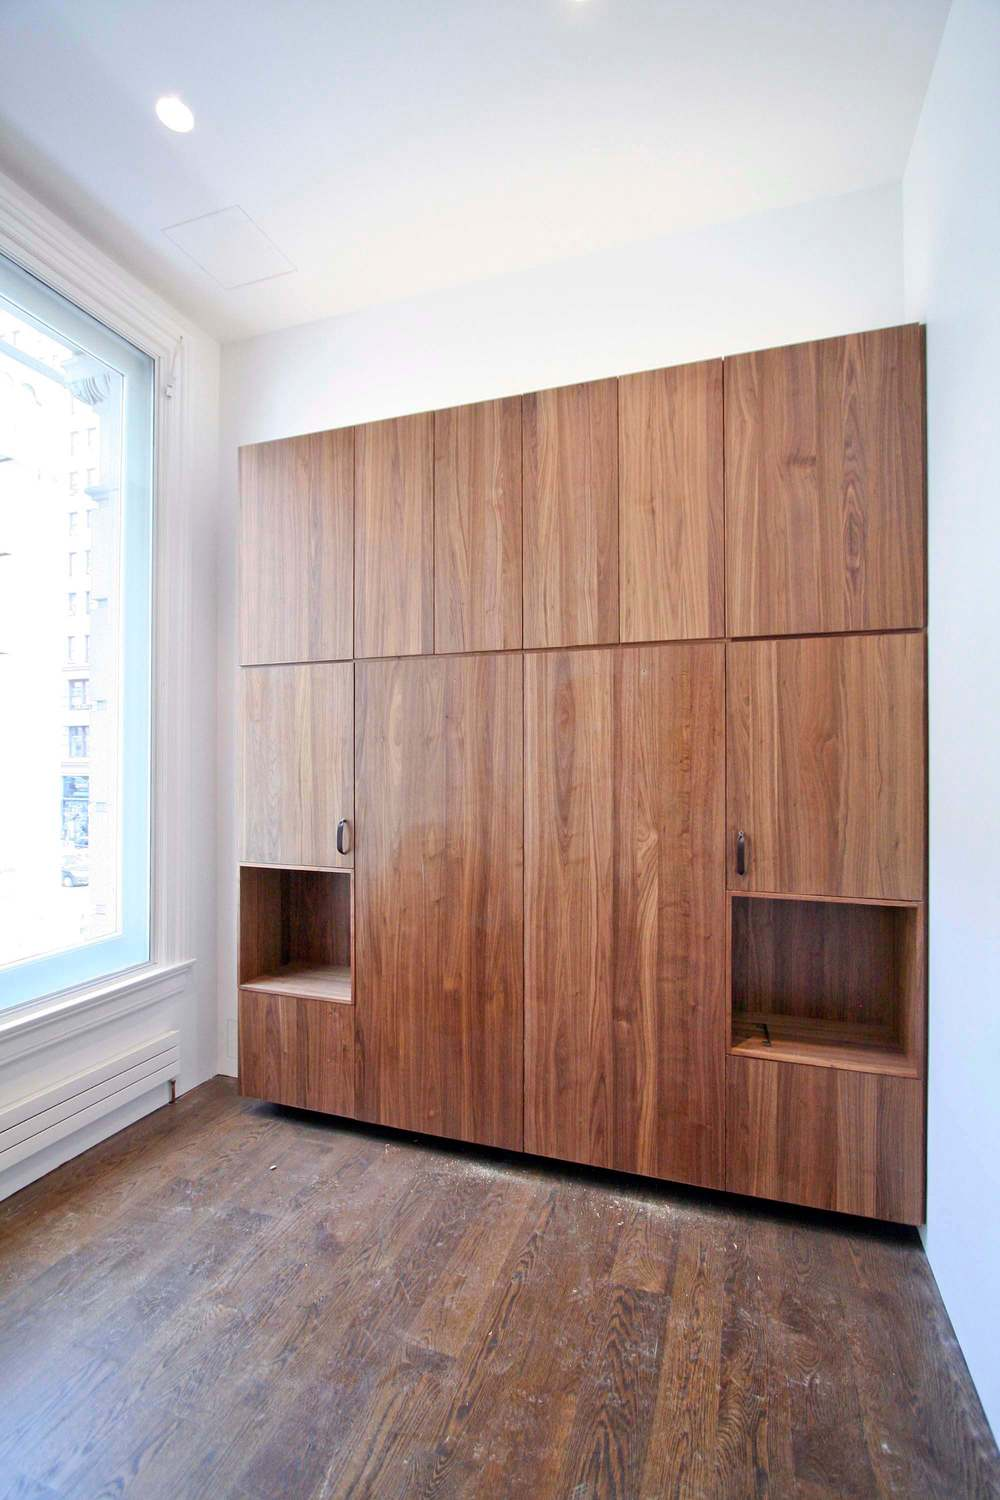 Guest Bedroom  -  Murphy Bed integrated into the Walnut millwork with side cubbies and storage above.